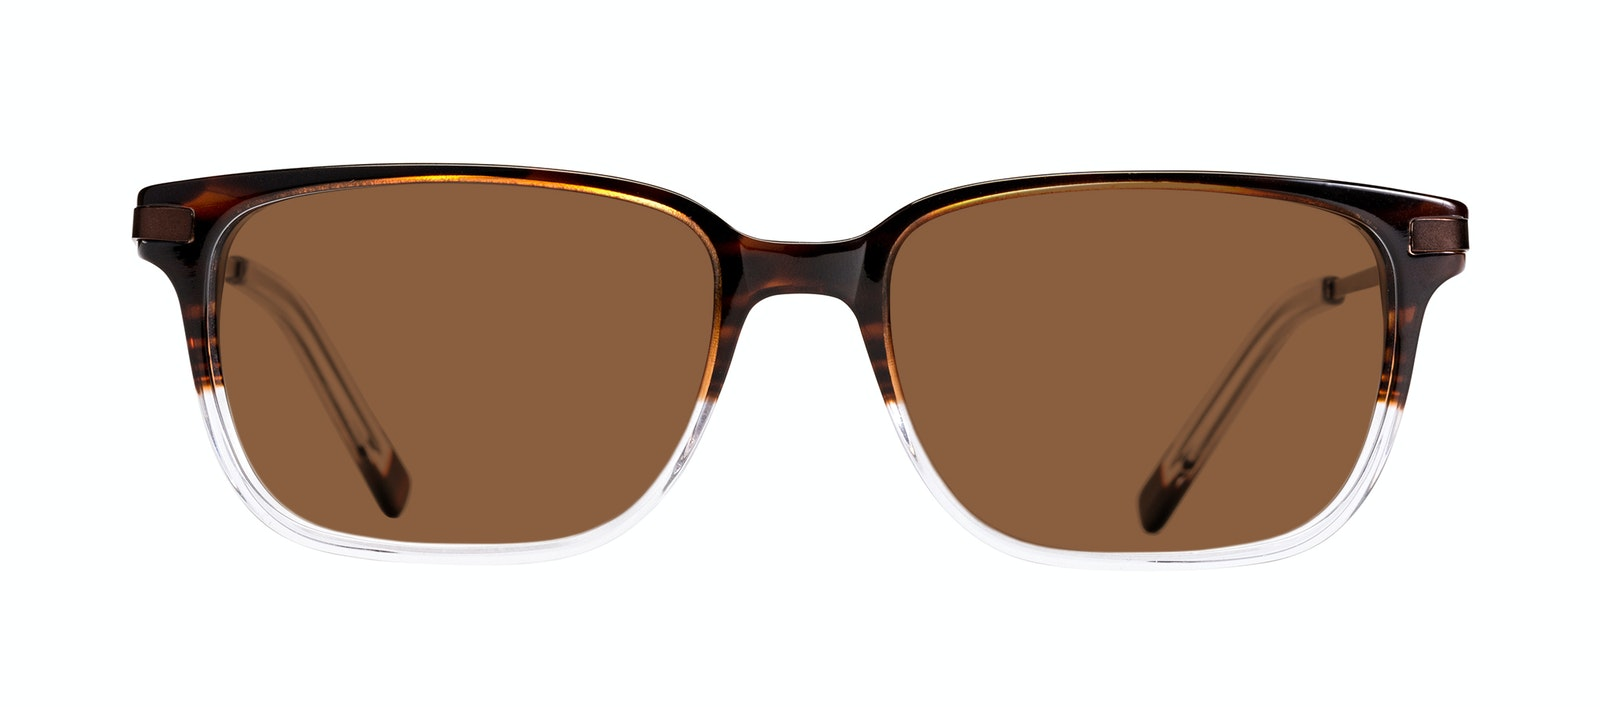 Affordable Fashion Glasses Rectangle Sunglasses Men Trade Mud Clear Front